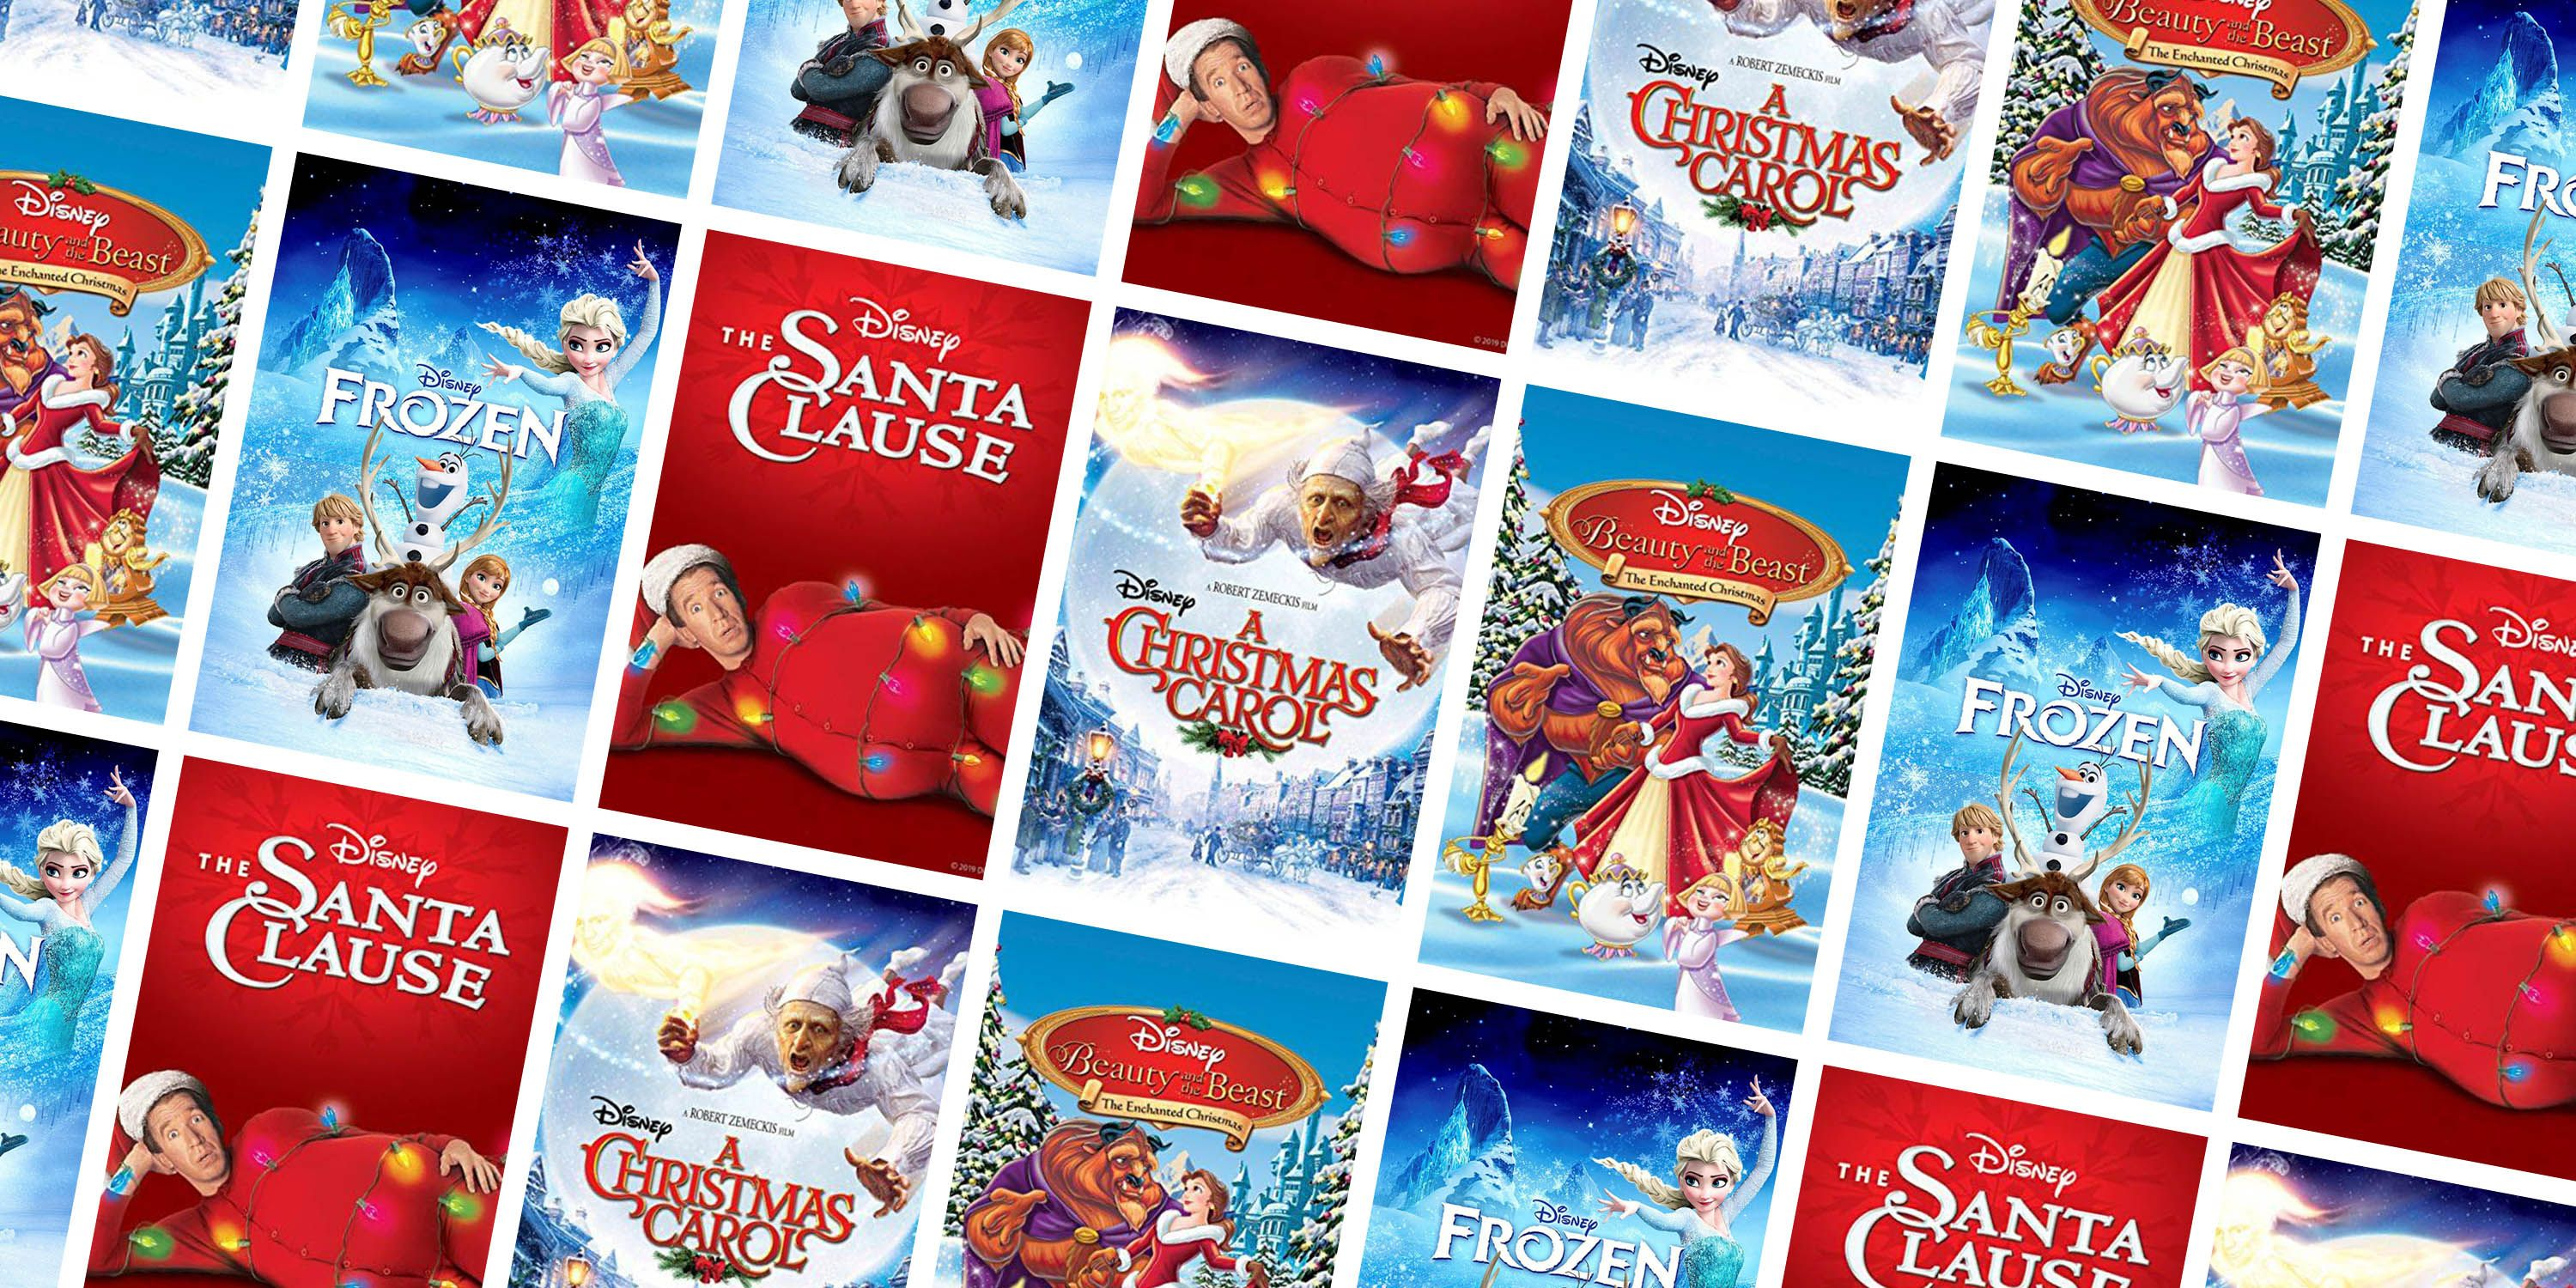 The 15 Best Disney Christmas Movies of All Time